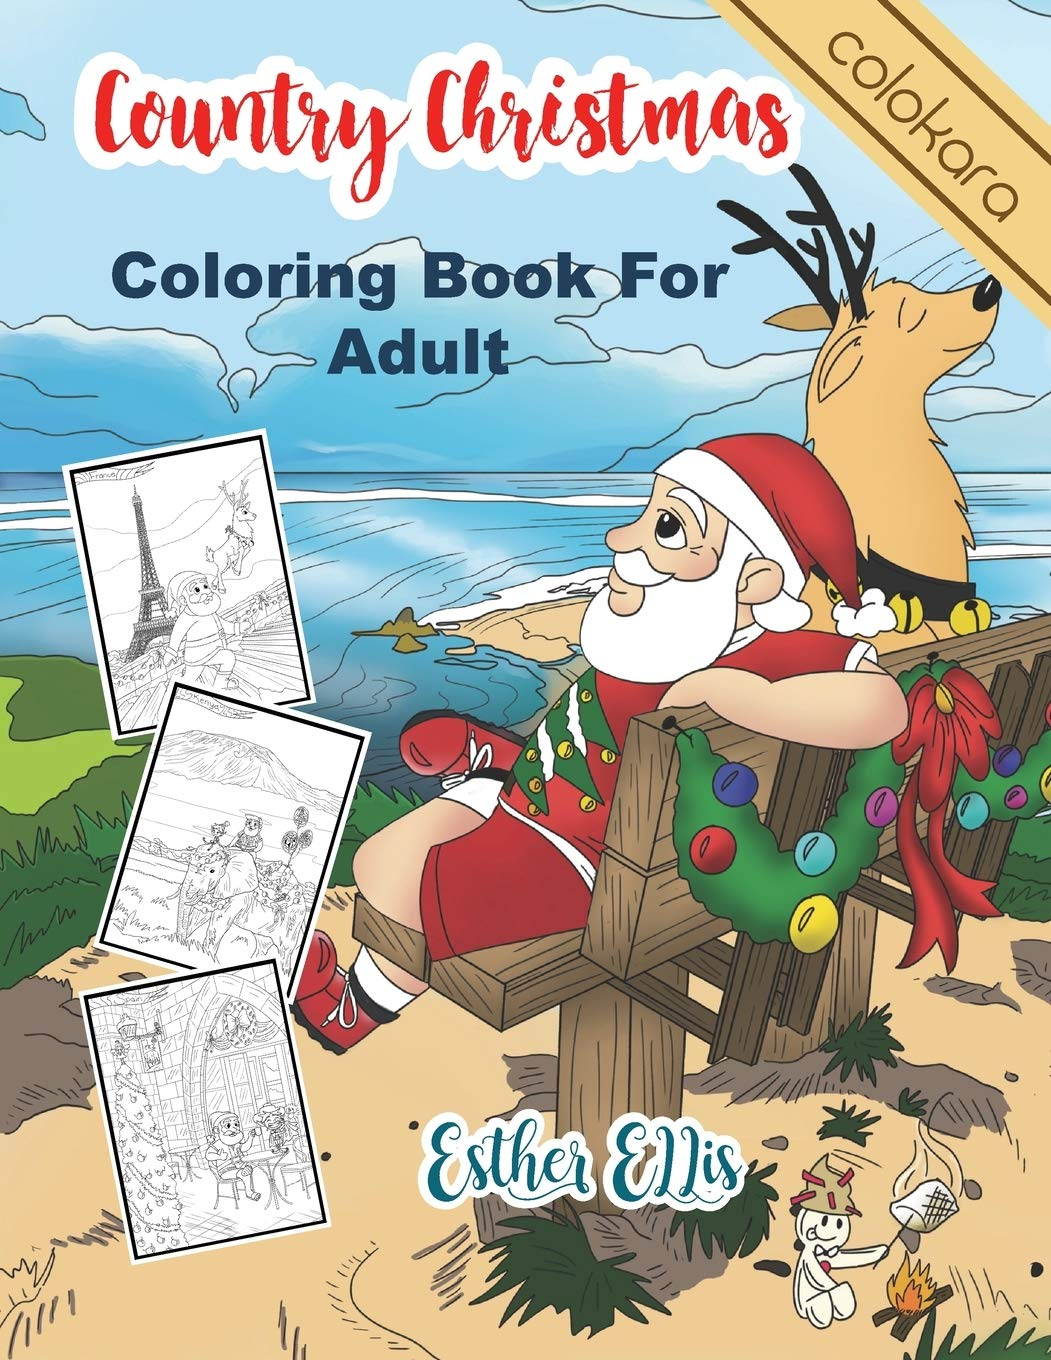 Christmas Around the World Coloring Book by Teach-A-Roo   TpT   1360x1051